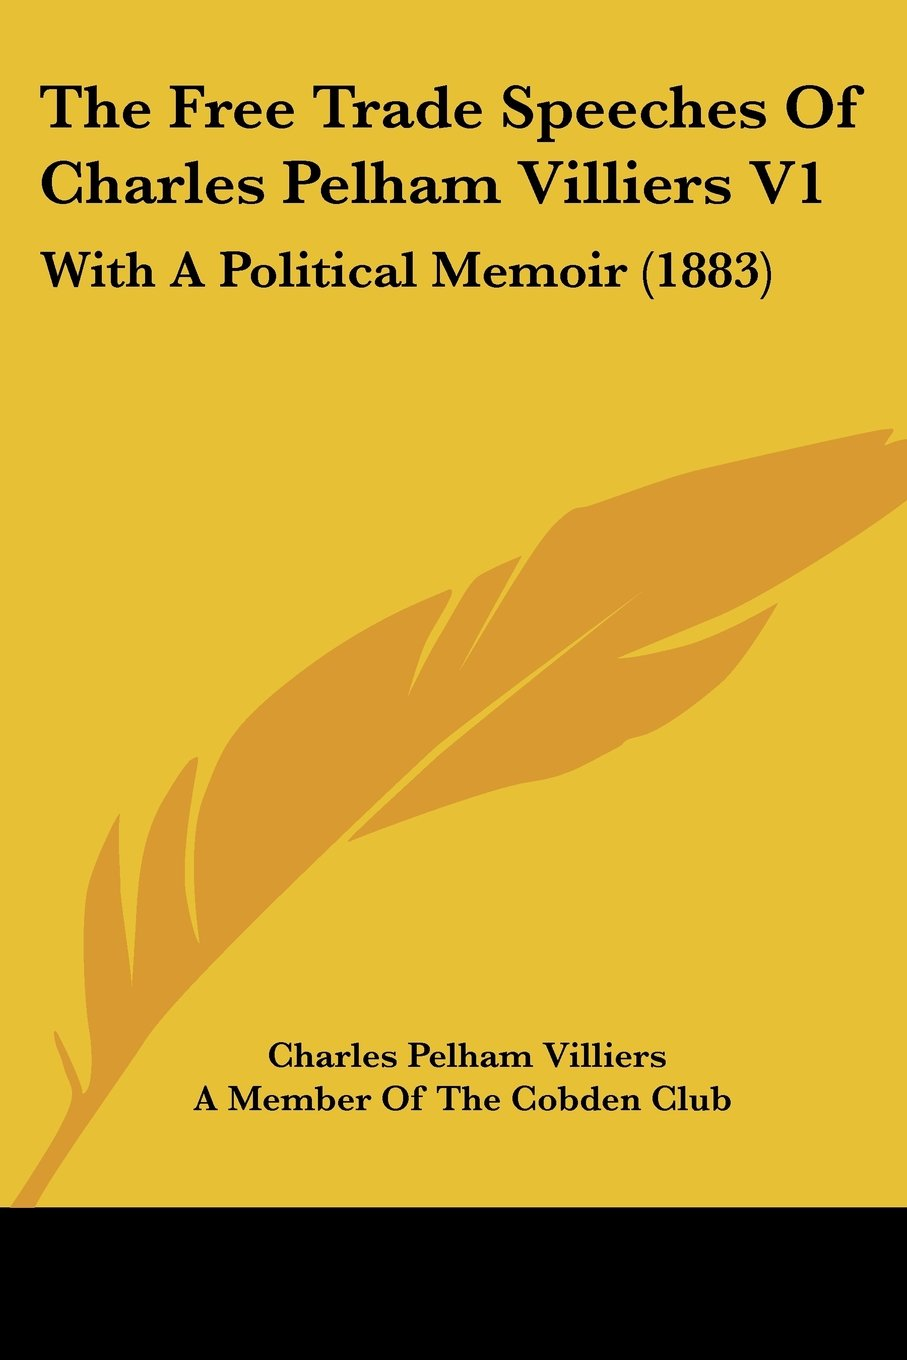 Download The Free Trade Speeches Of Charles Pelham Villiers V1: With A Political Memoir (1883) ebook